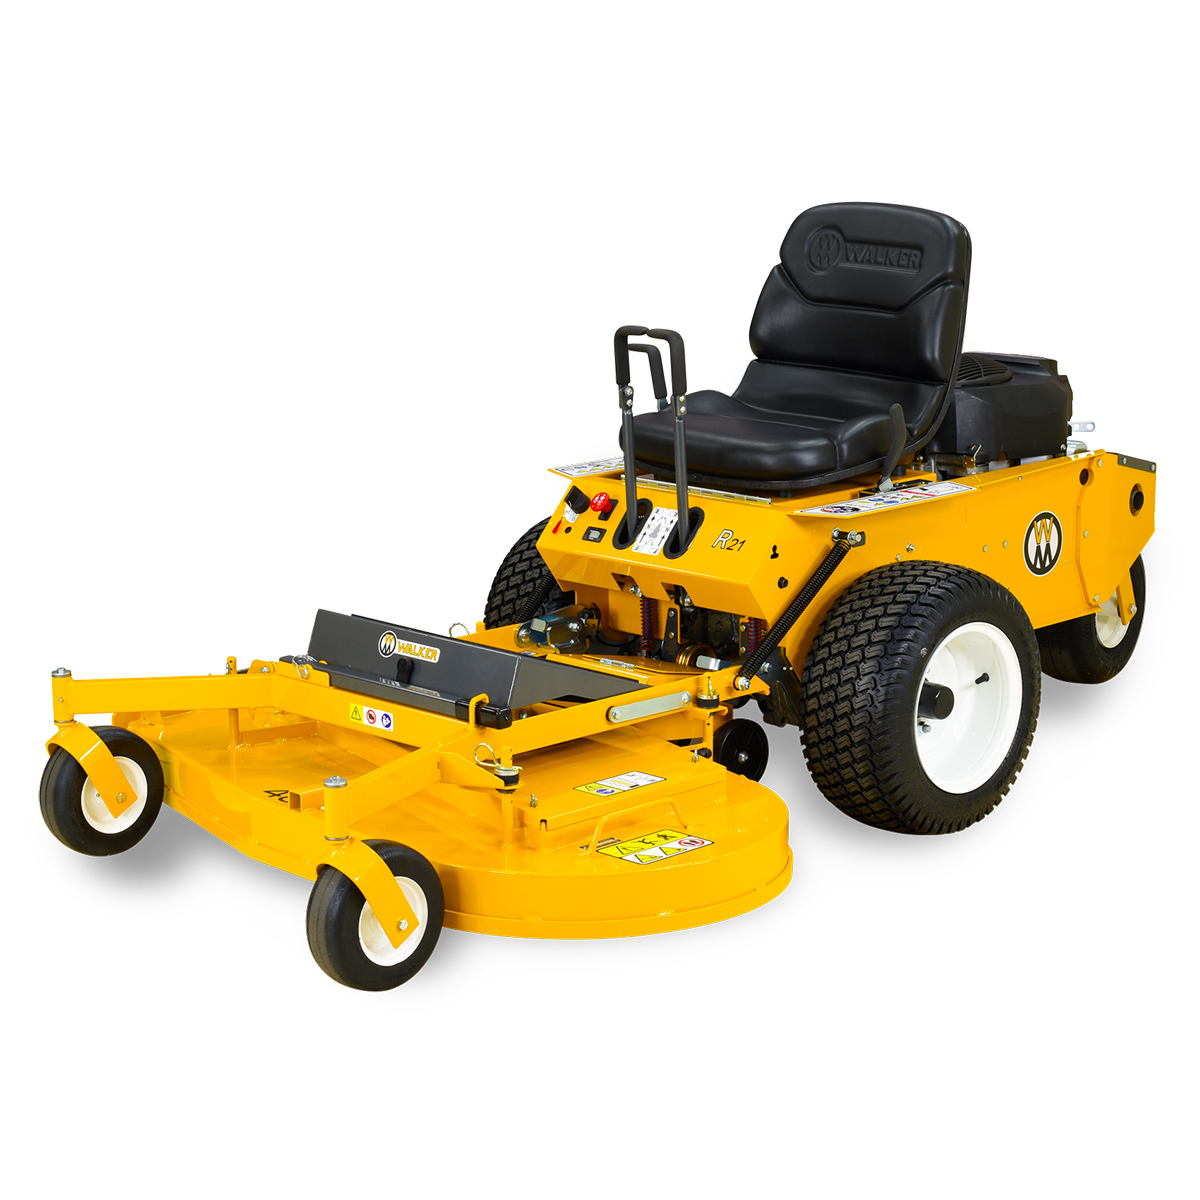 Walker Mower Model RS42R - 42 inch side discharge